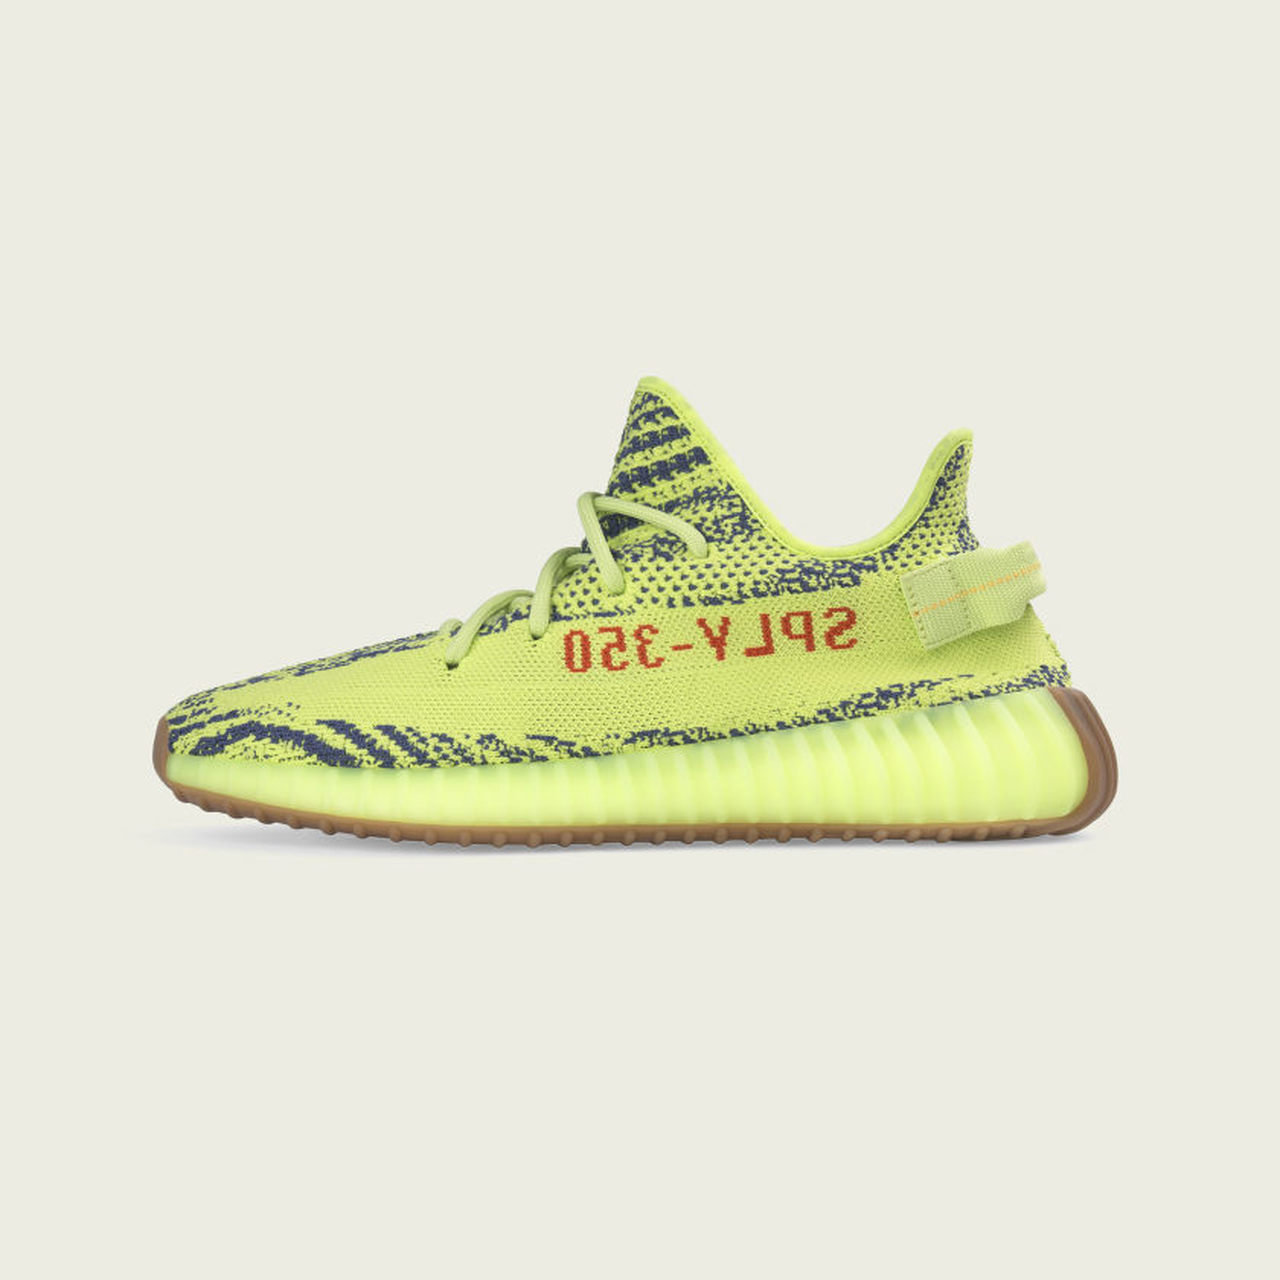 Adidas YEEZY BOOST 350 V2 restock on Yeezy Supply Justrends